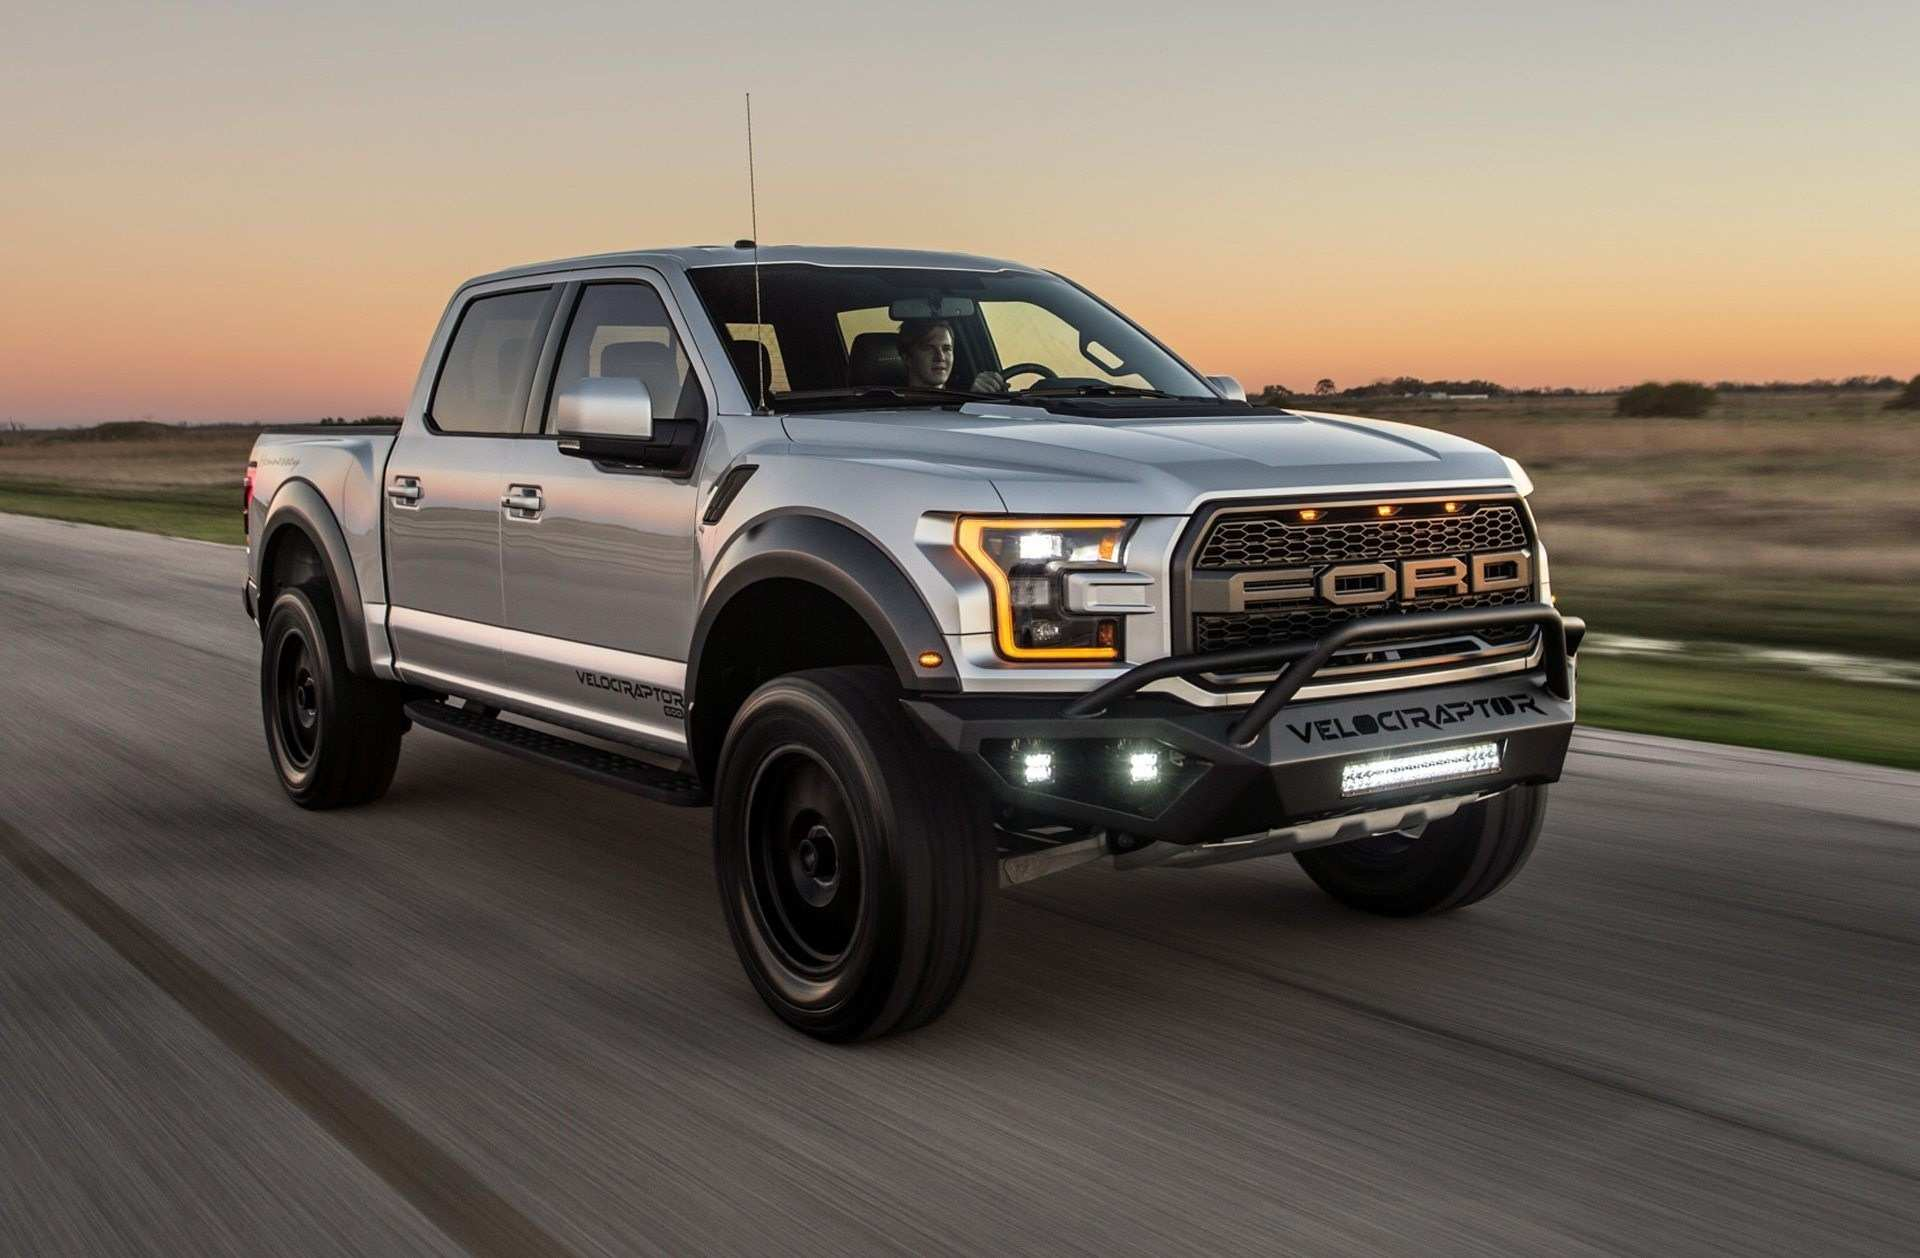 97 All New The 2019 Ford Raptor V8 Exterior And Interior Review New Review for The 2019 Ford Raptor V8 Exterior And Interior Review